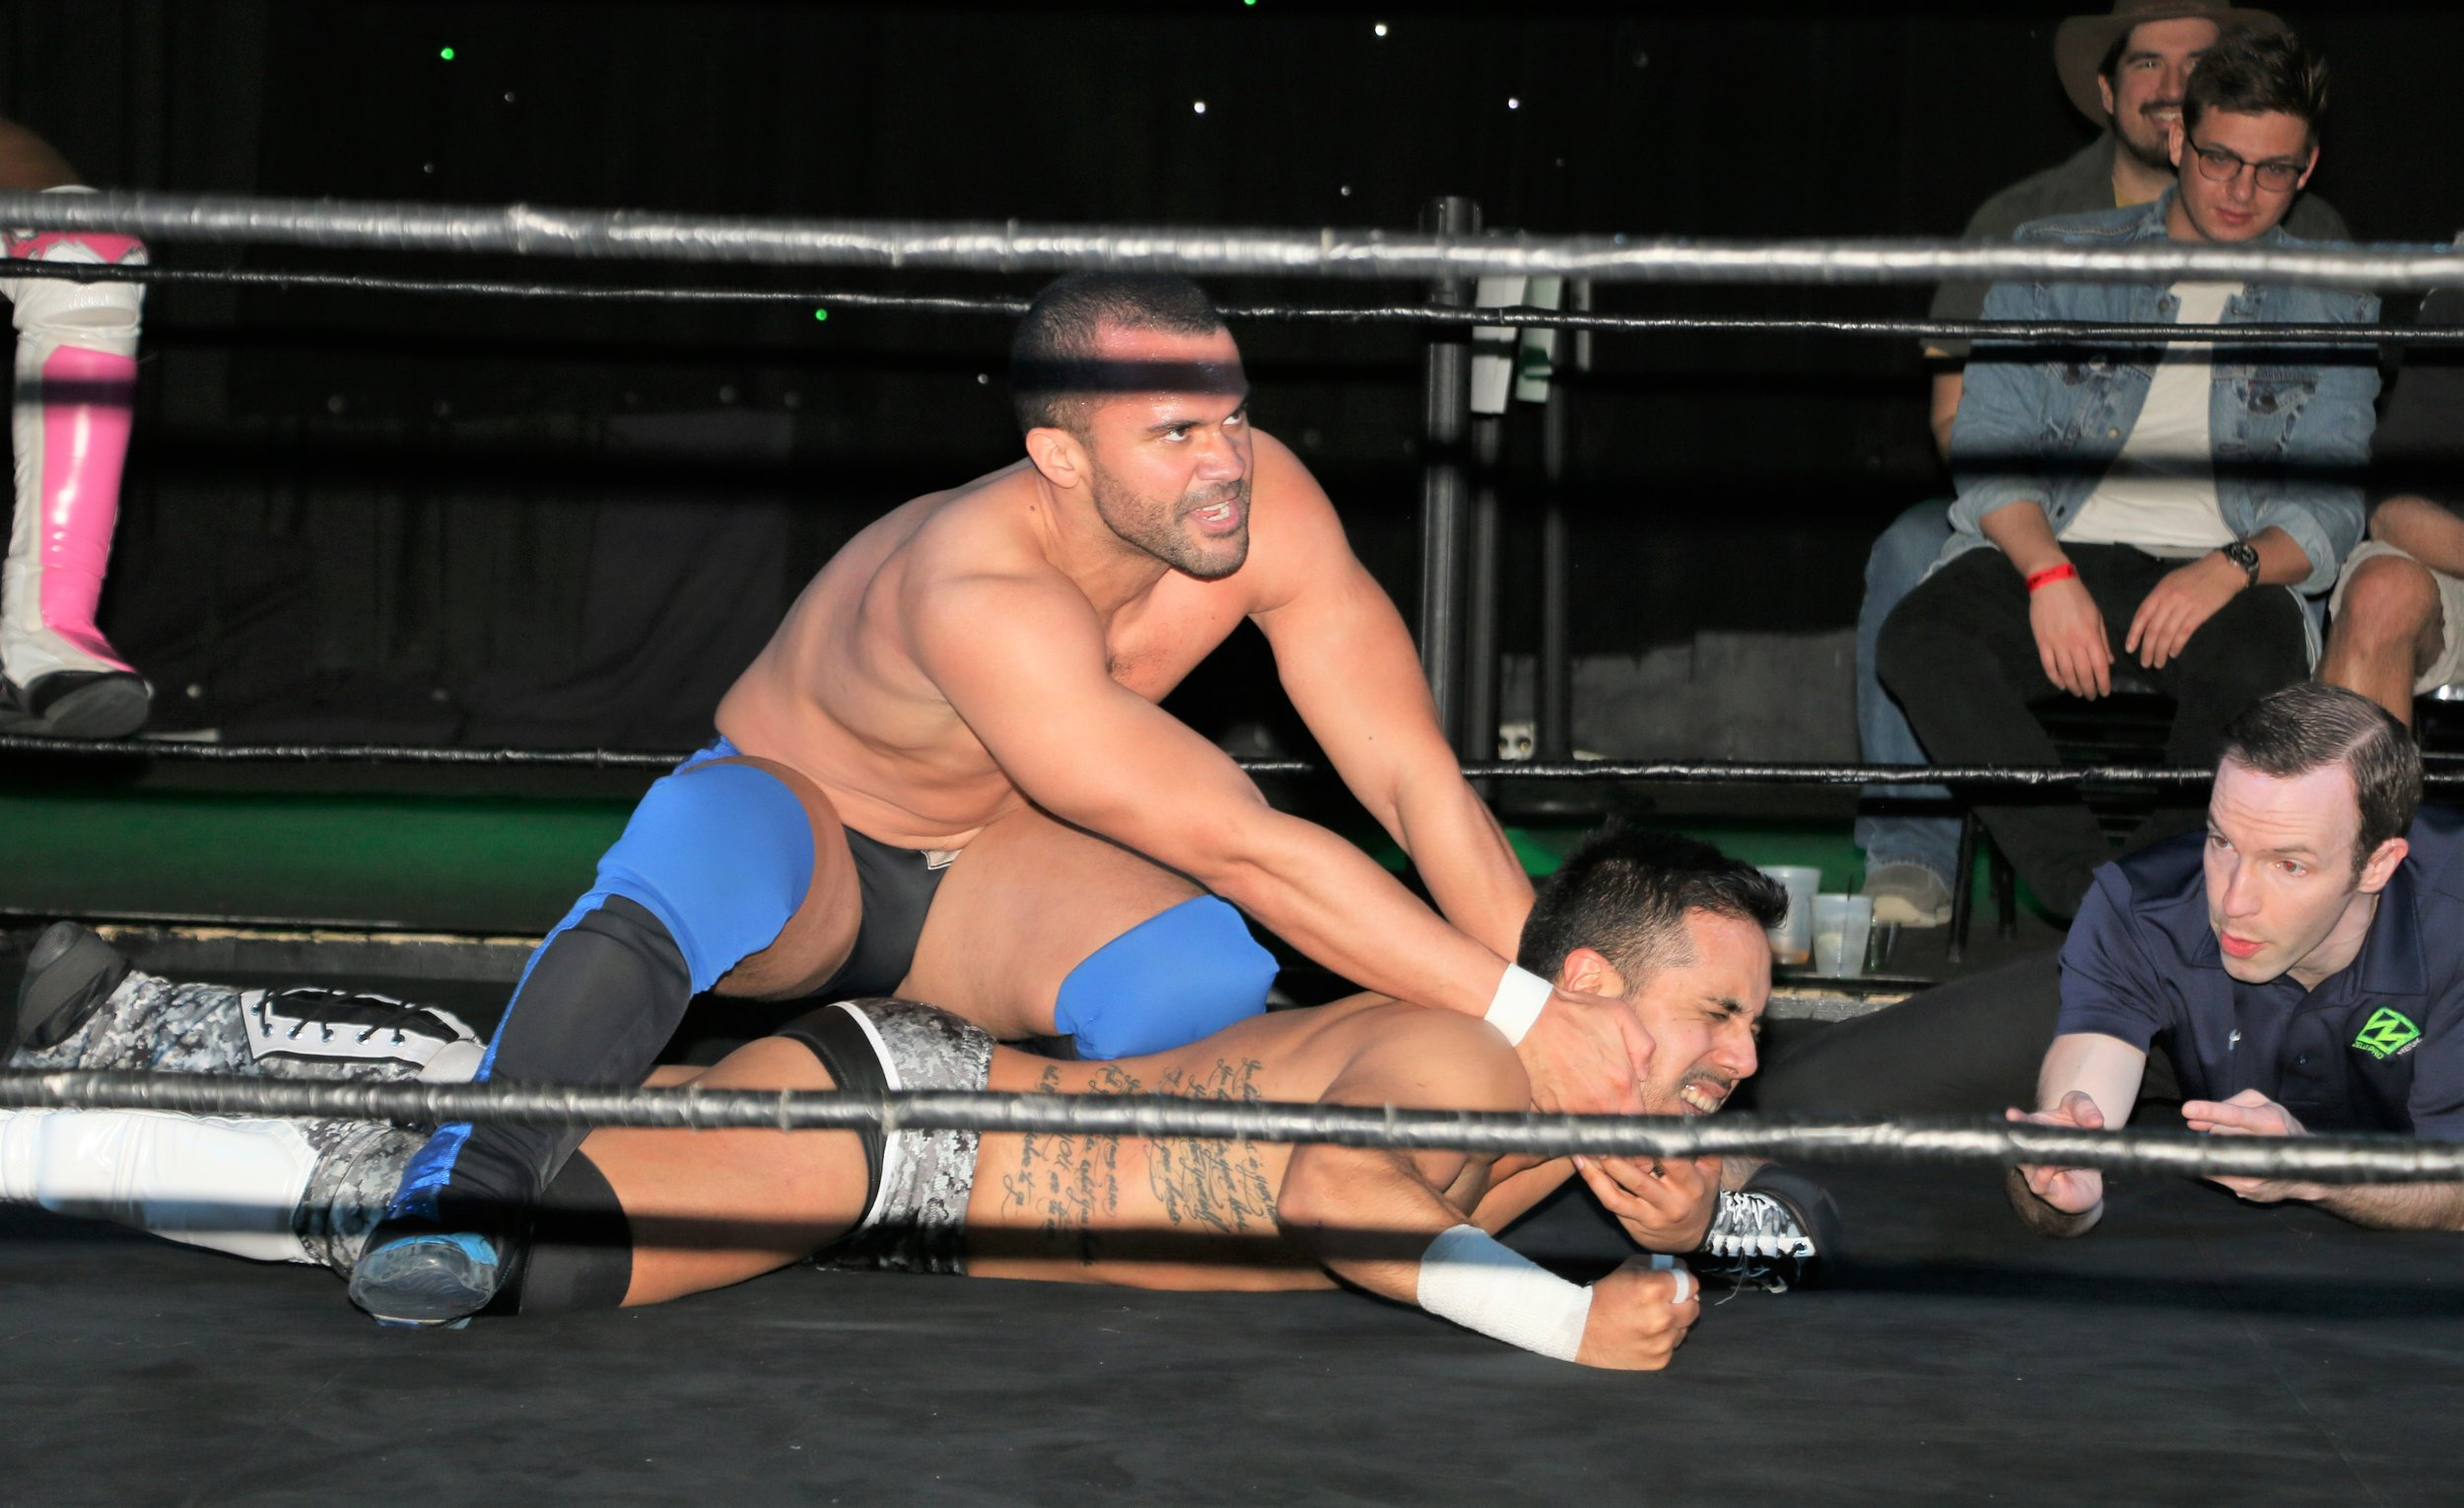 GPA controls Isaias Velazquez during the tag team match.